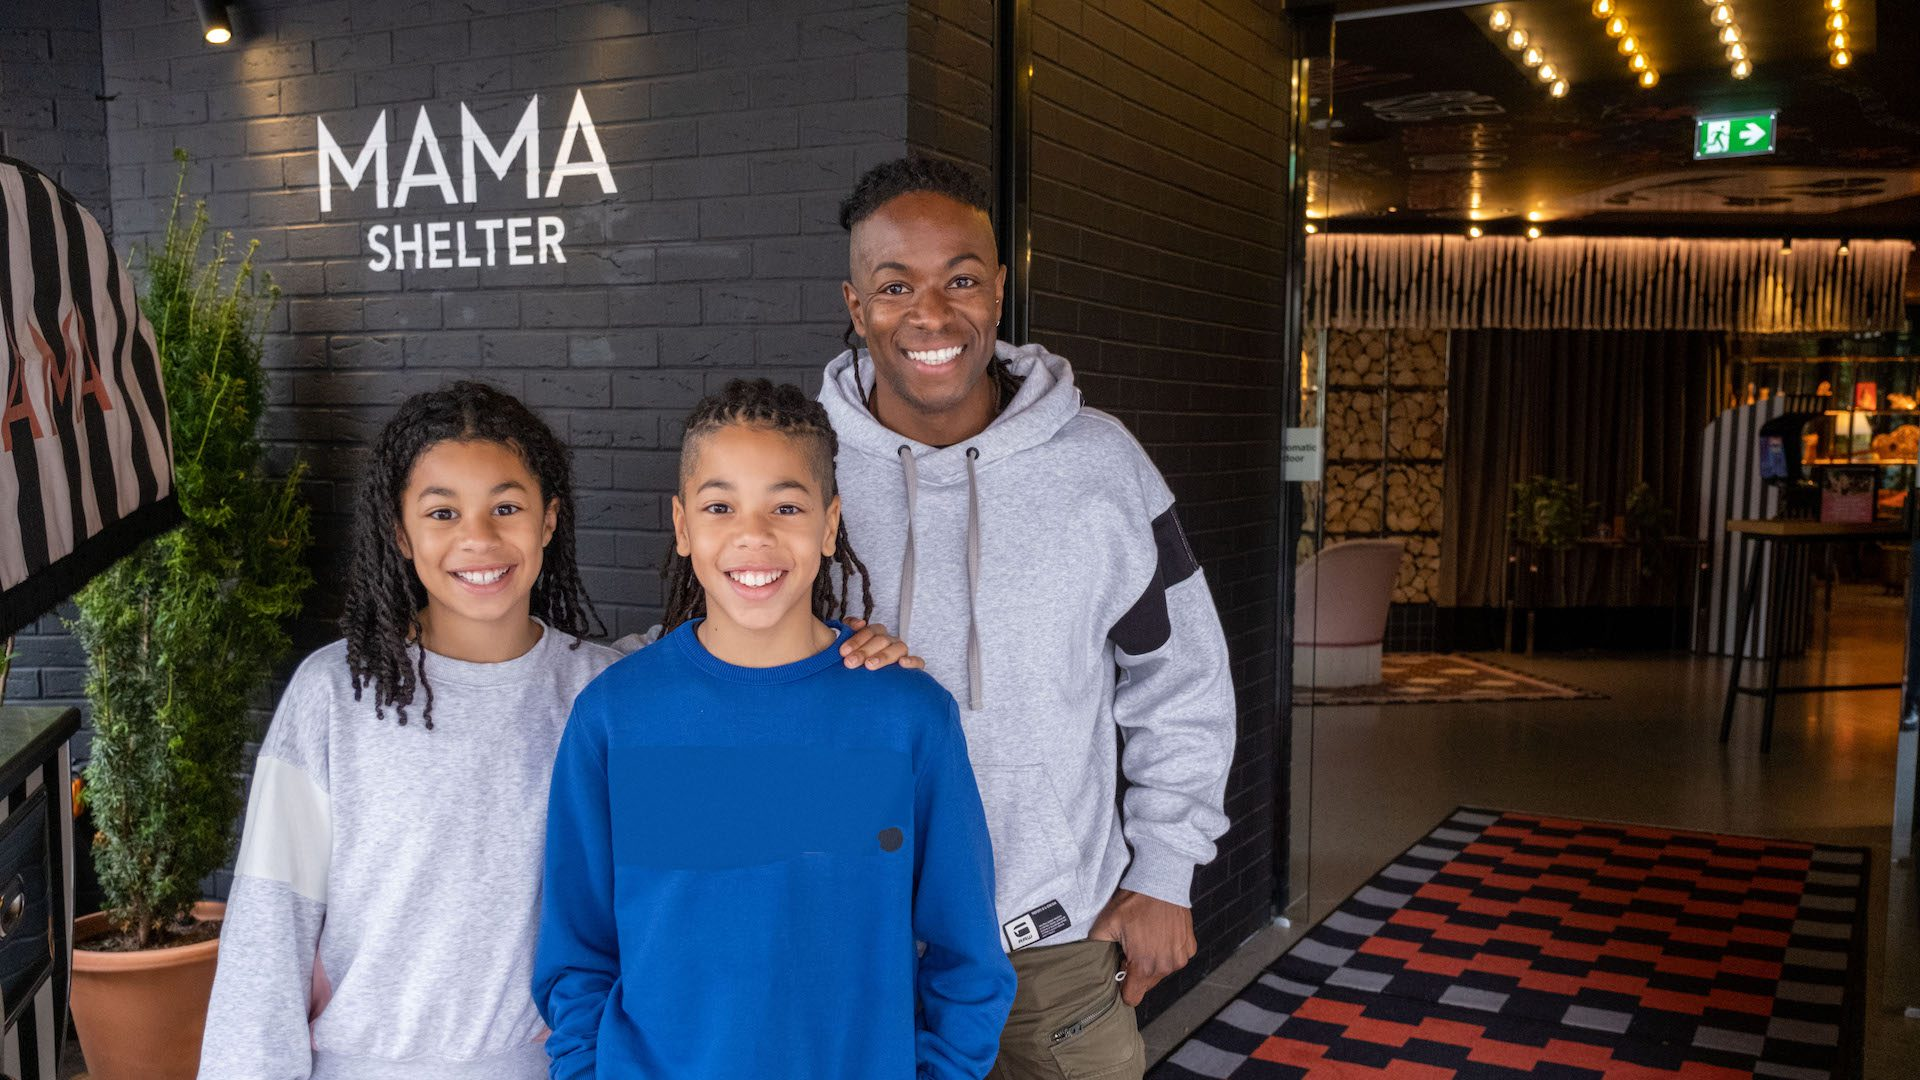 Mama Shelter Kidzcation Hotel Review – A Great Little Secret In The Heart Of London